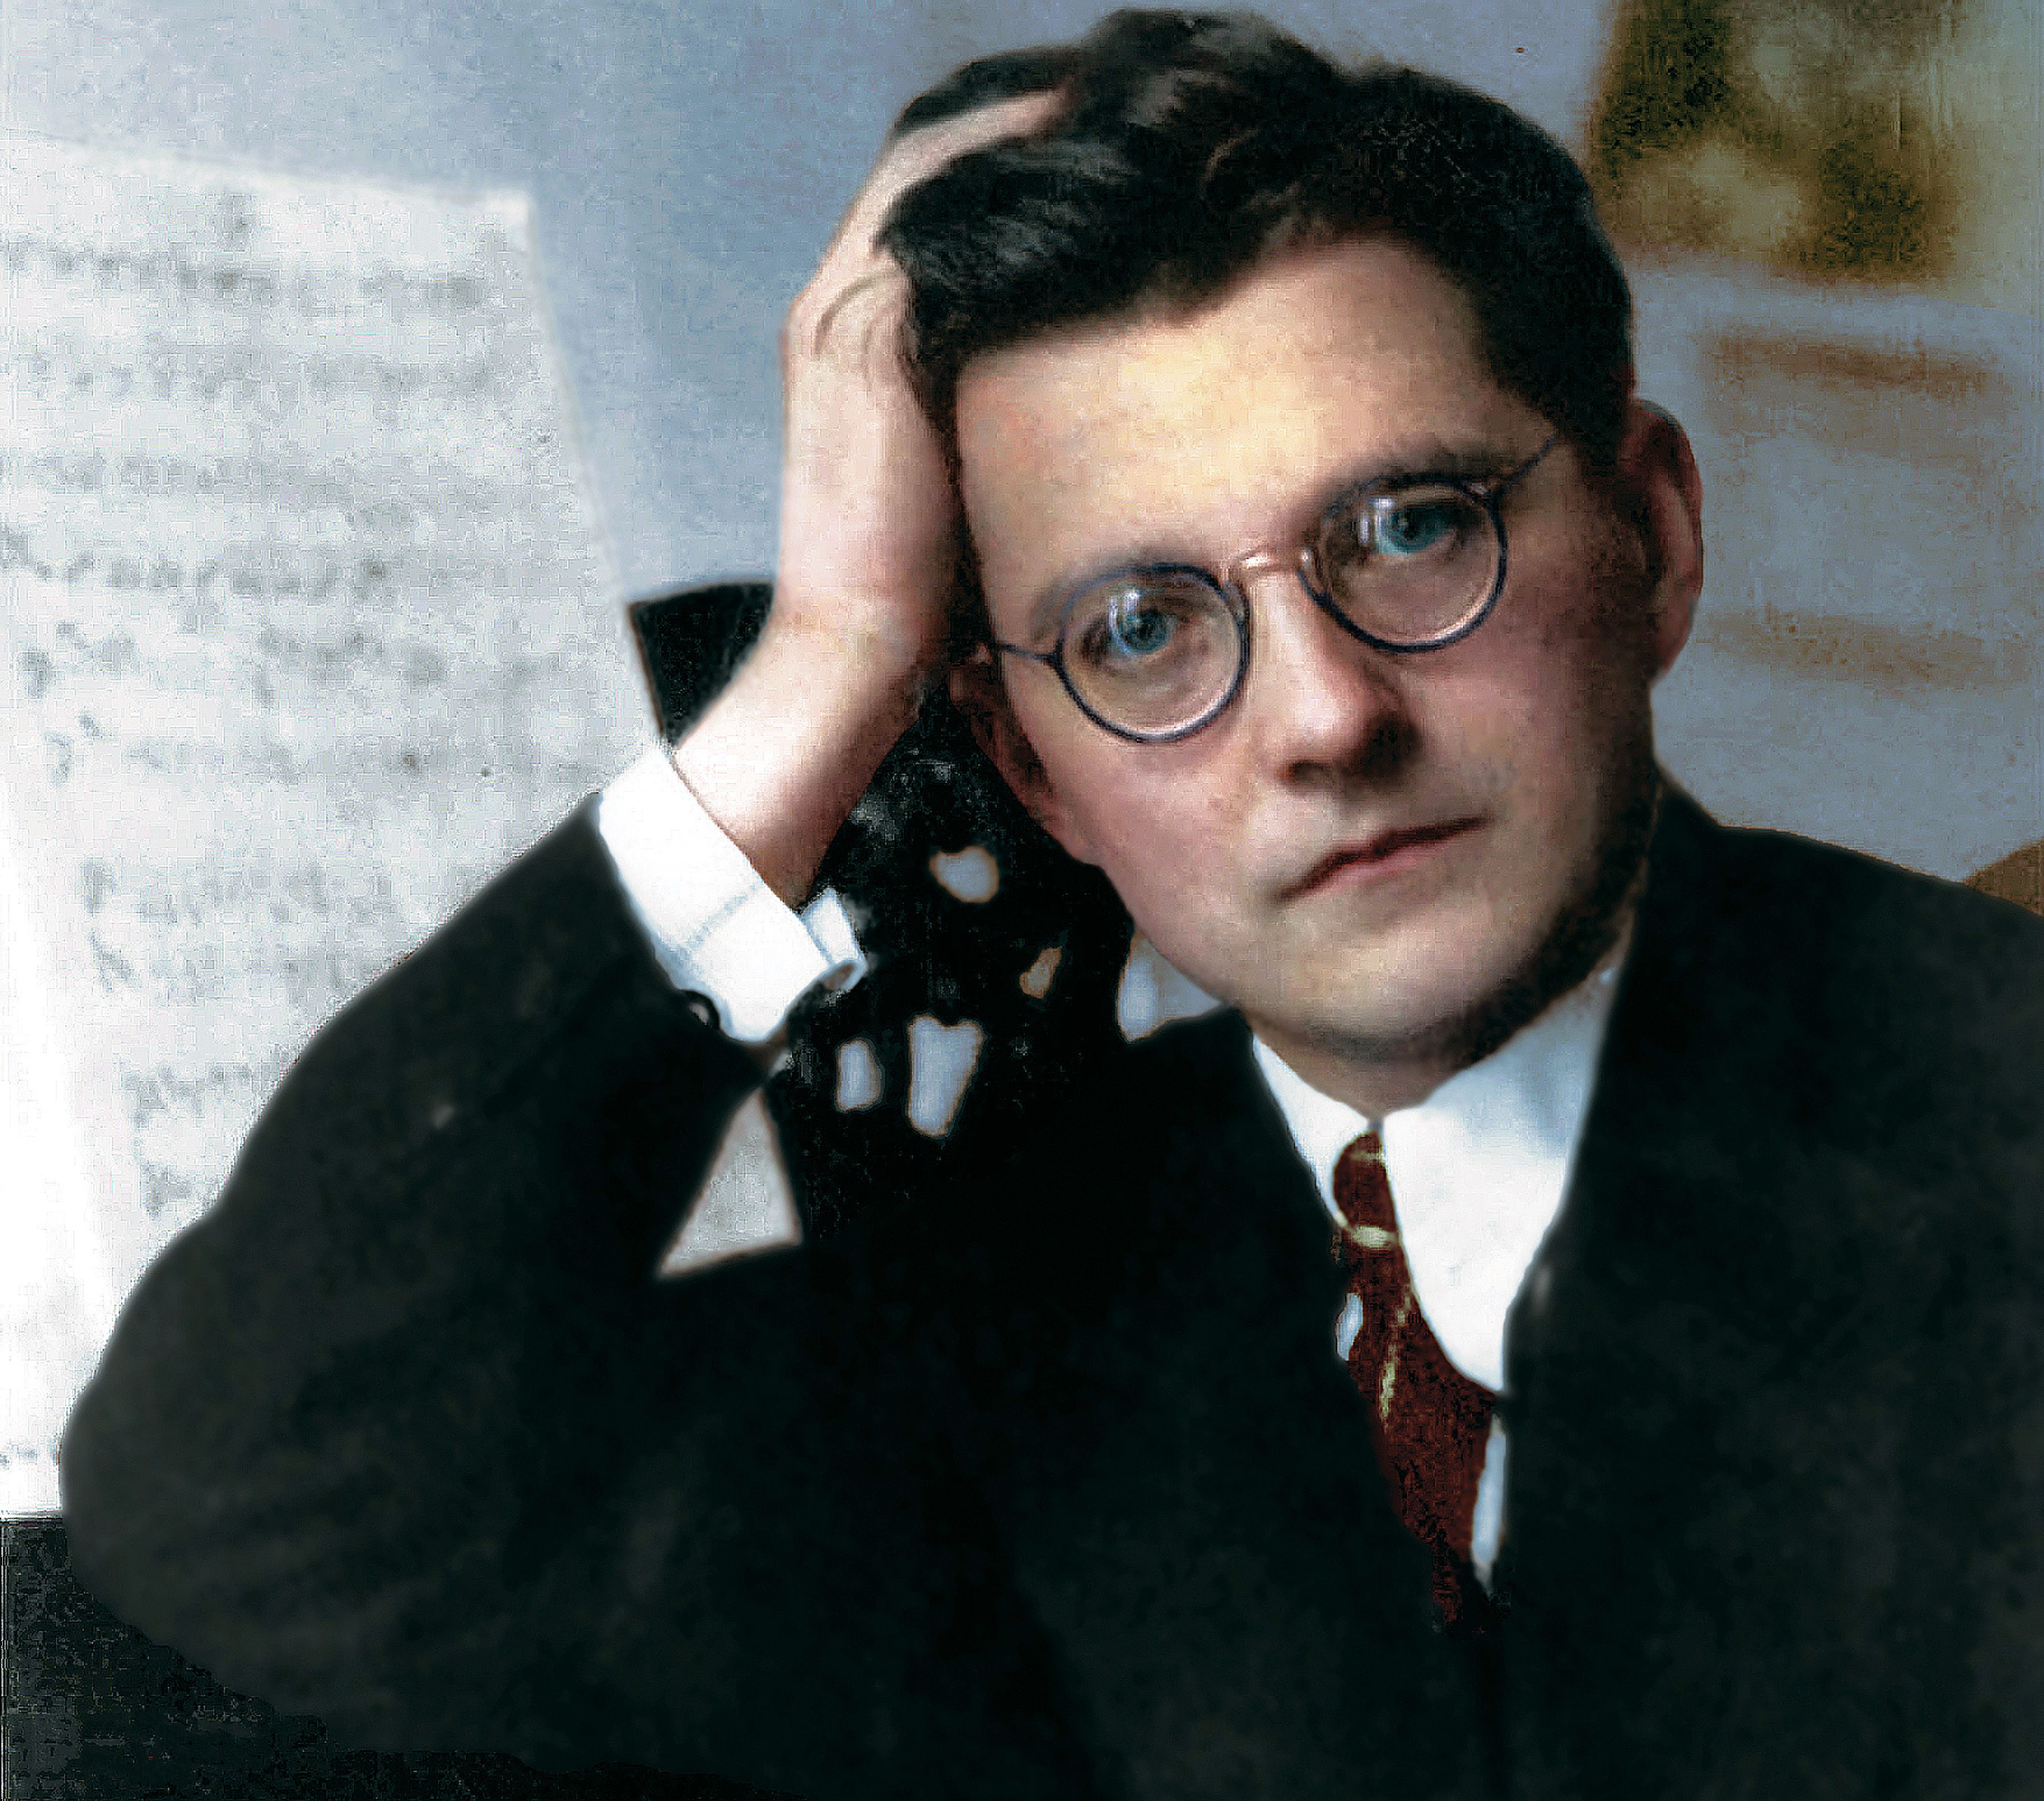 colorized by Klimbim // Shostakovich was a Russian composer